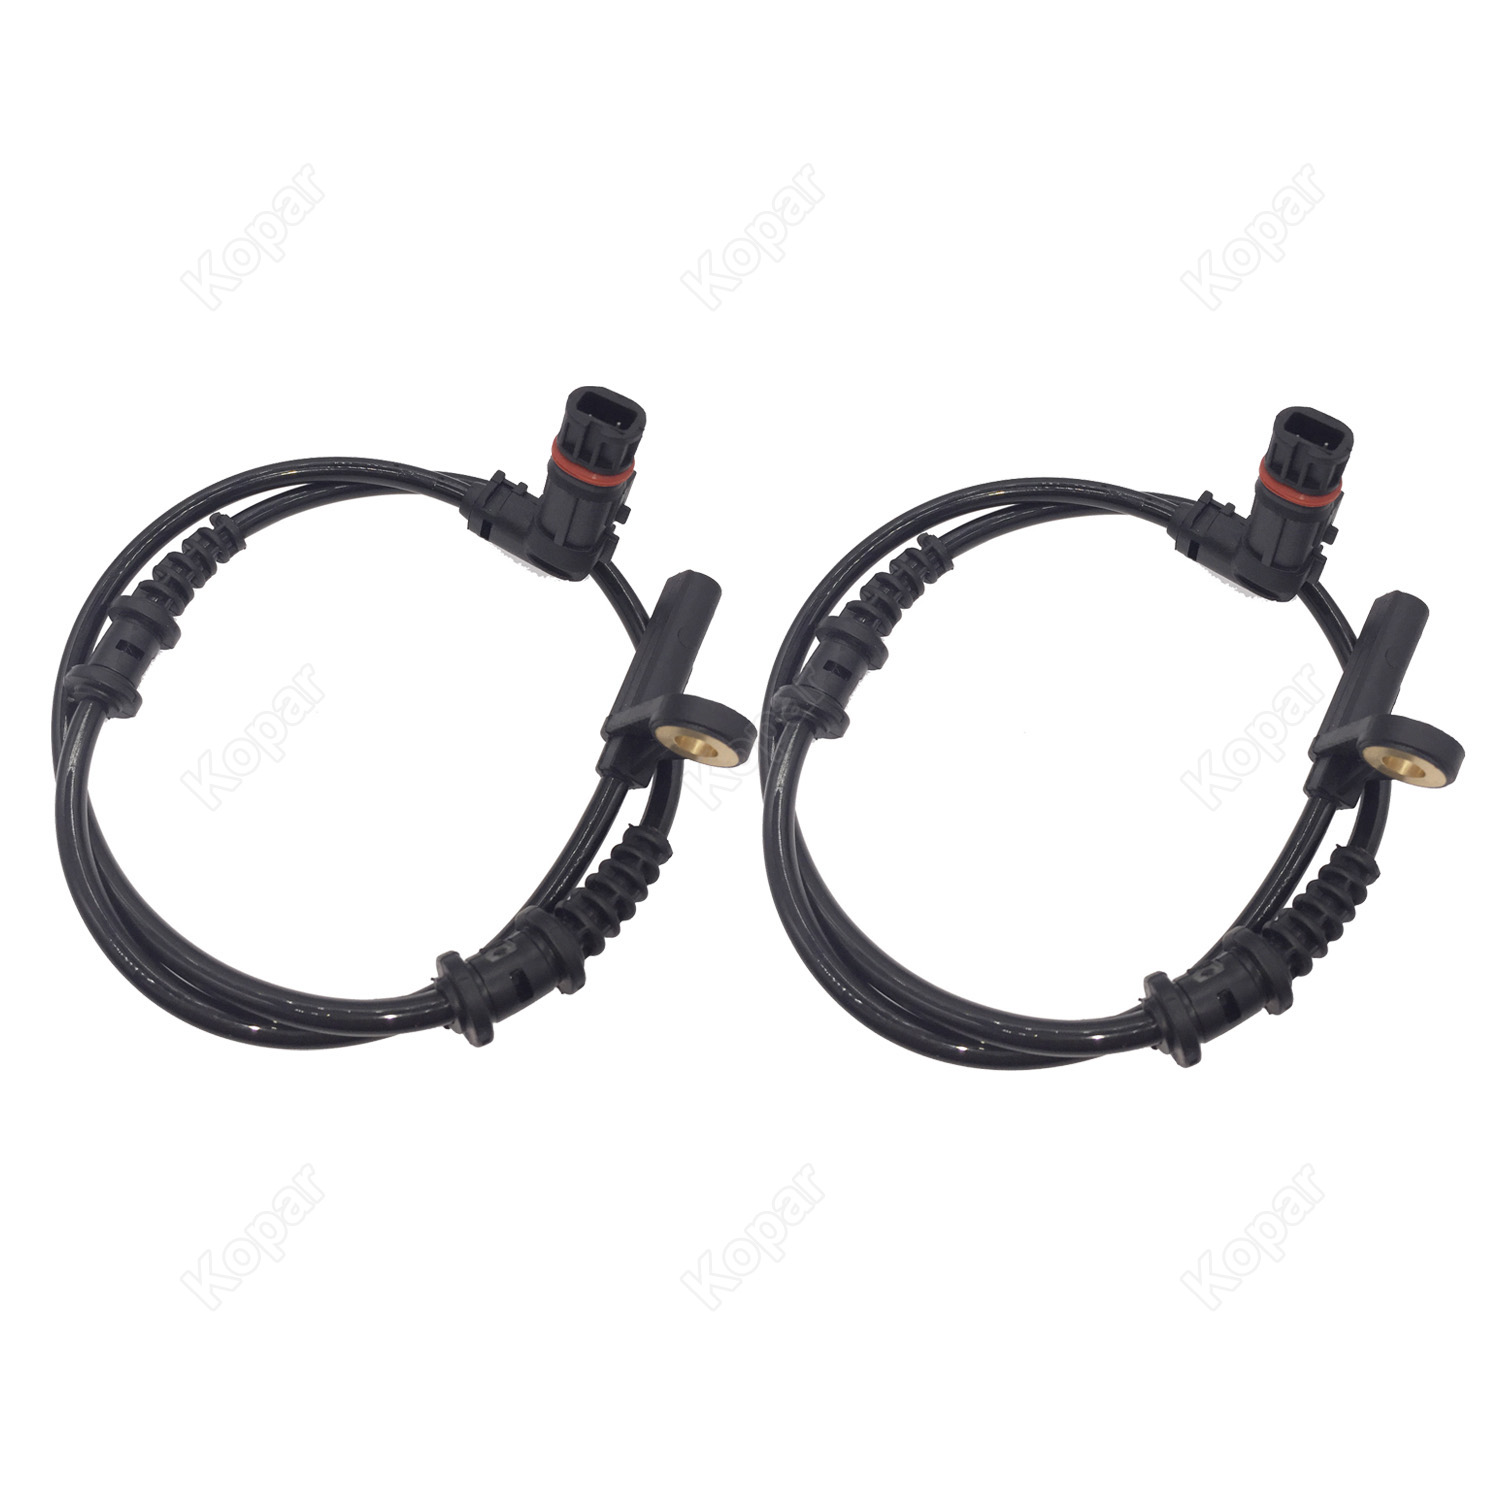 2PCS Front ABS Speed Sensor For Mercedes-Benz CLK320 C230